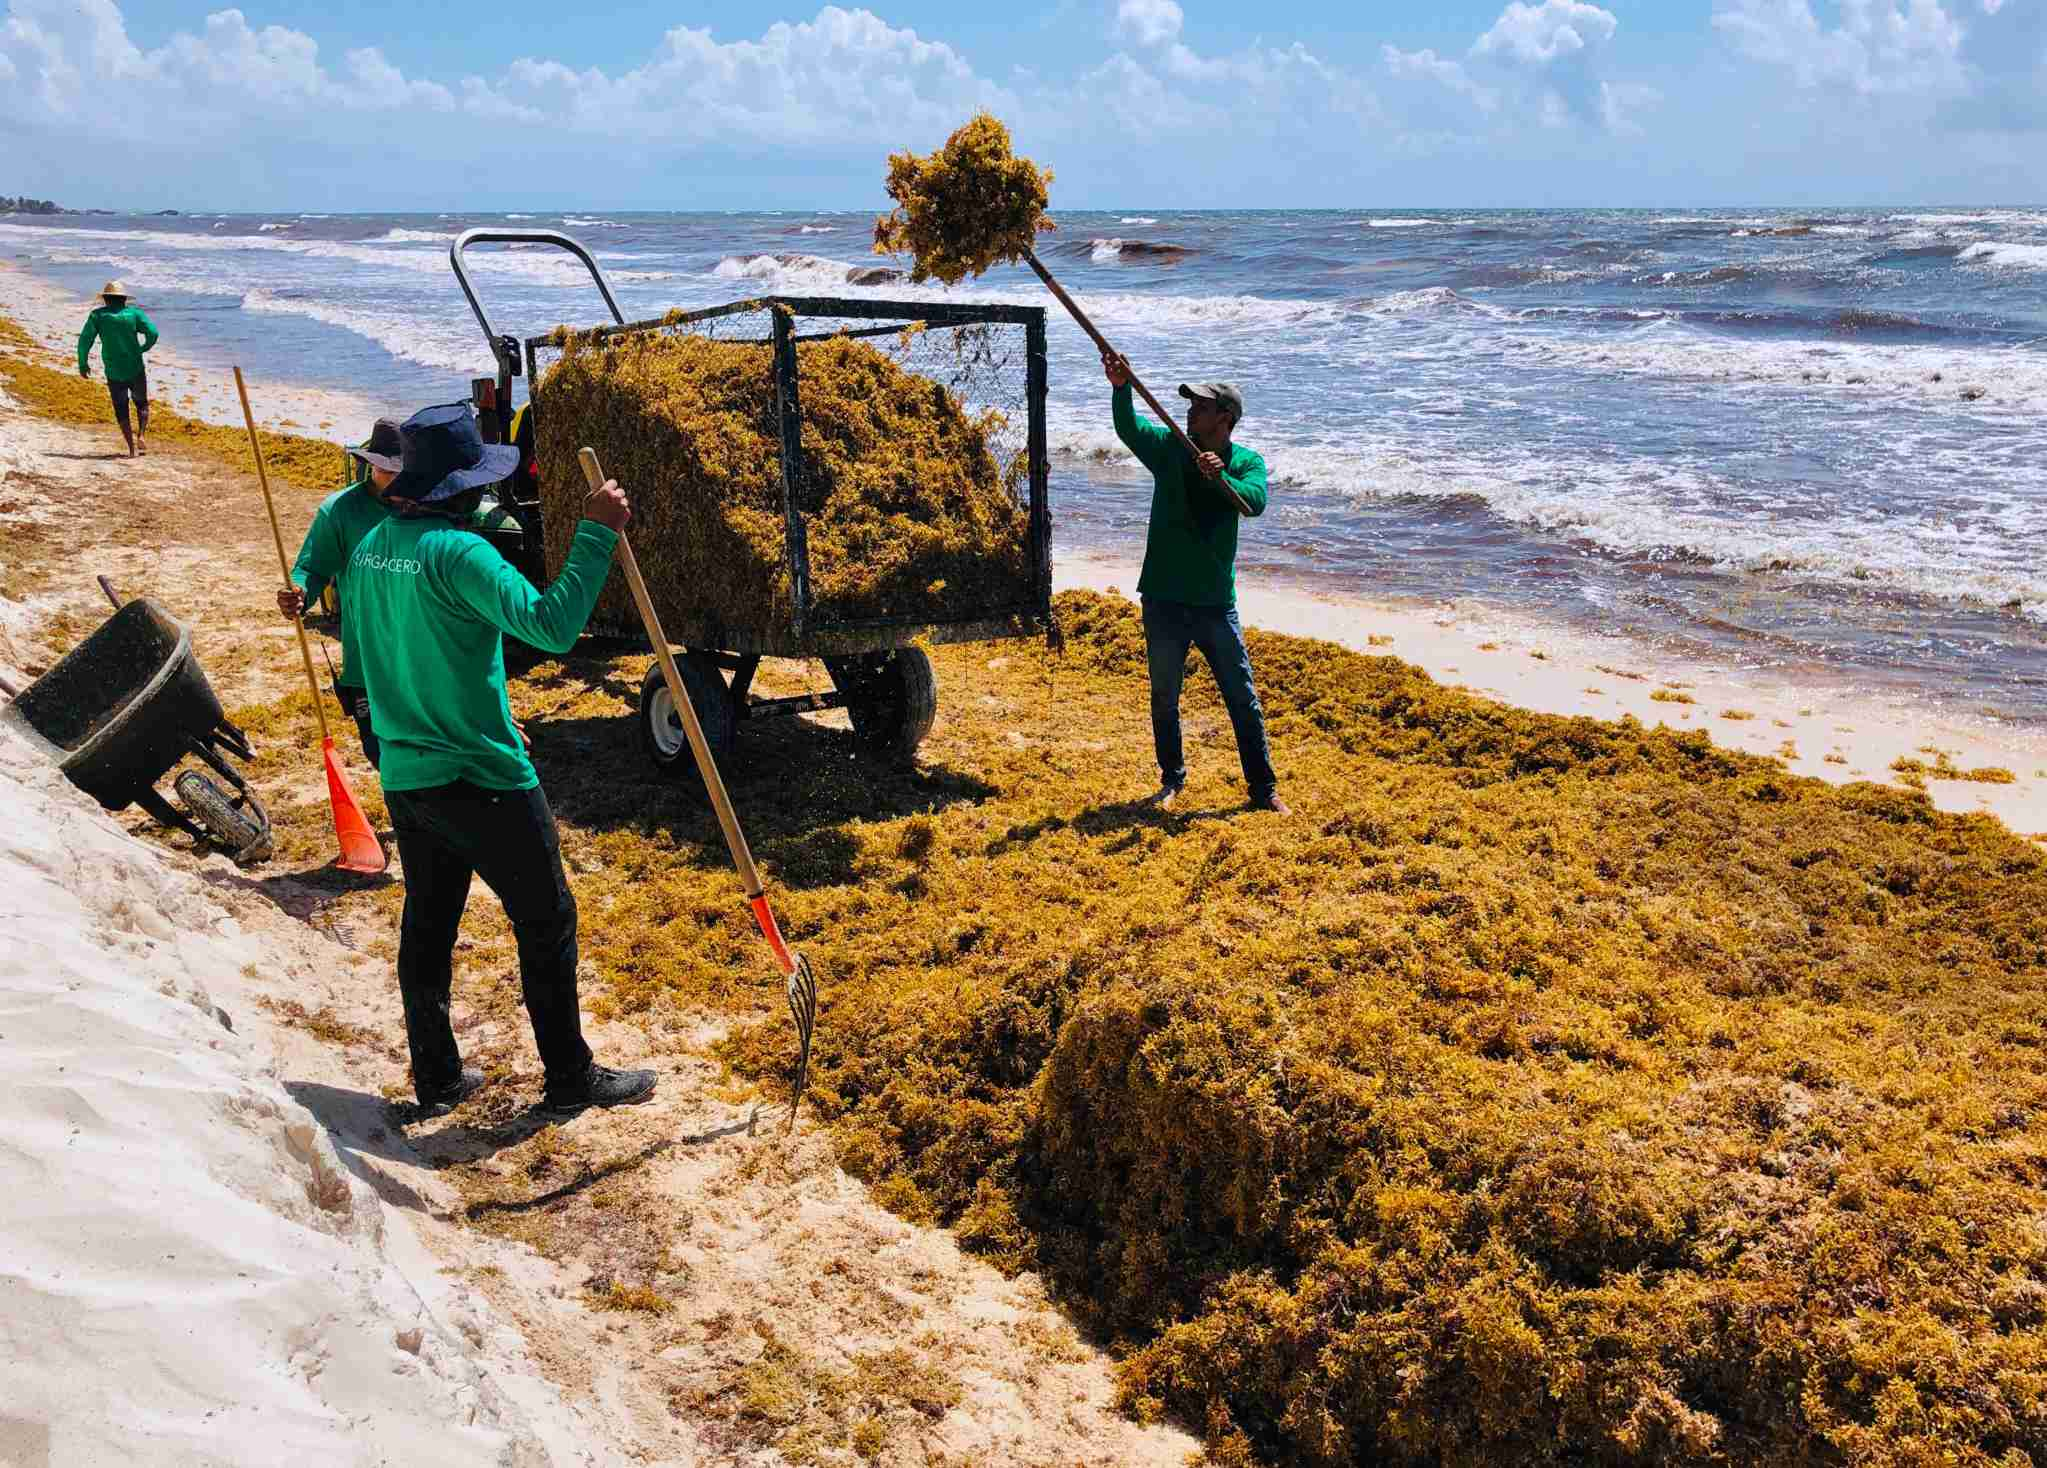 Workers remove seaweed from a beach along Mexico